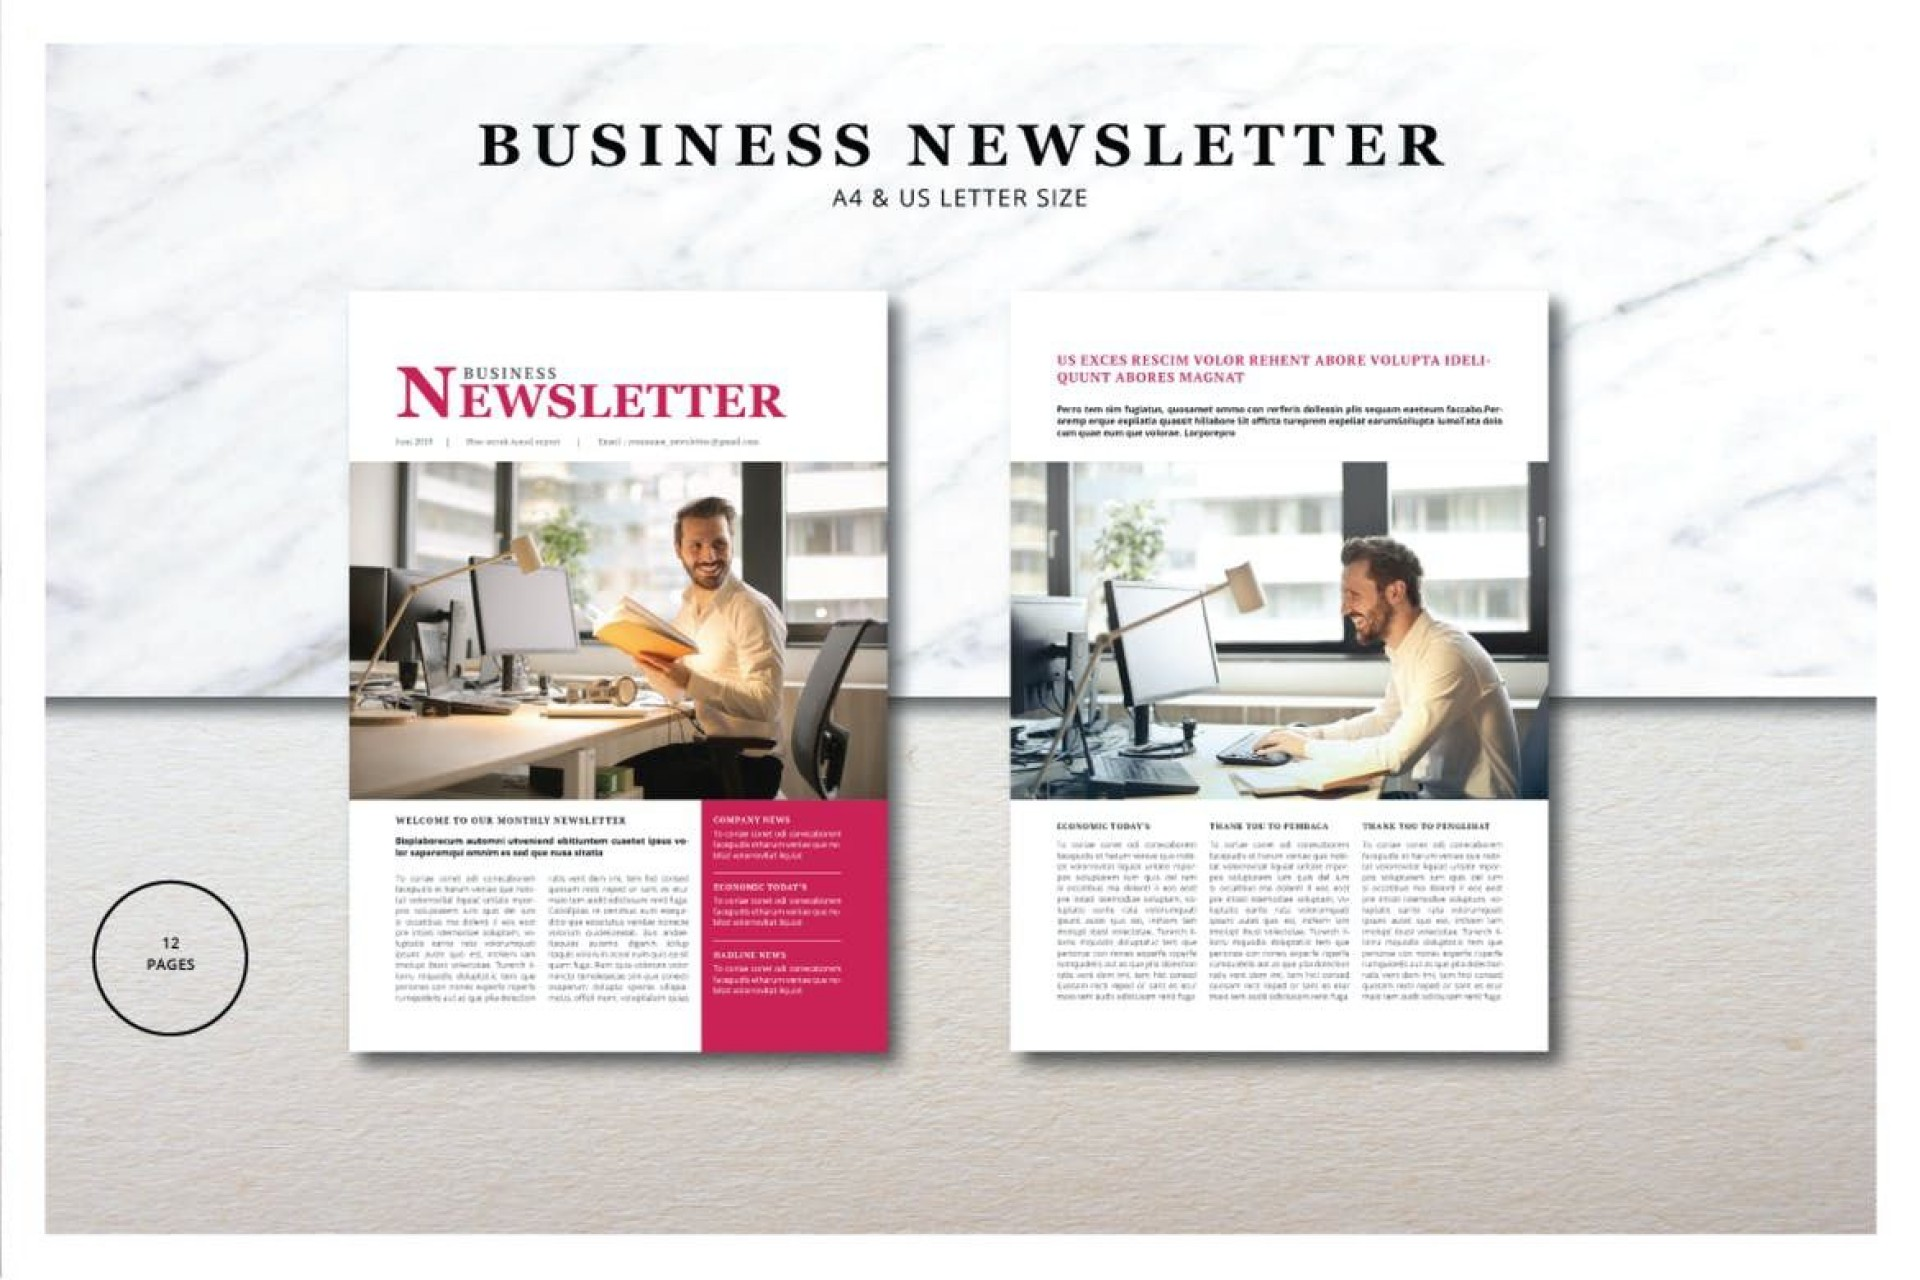 002 Staggering Indesign Newsletter Template Free Image  Cs6 Email Adobe Download1920